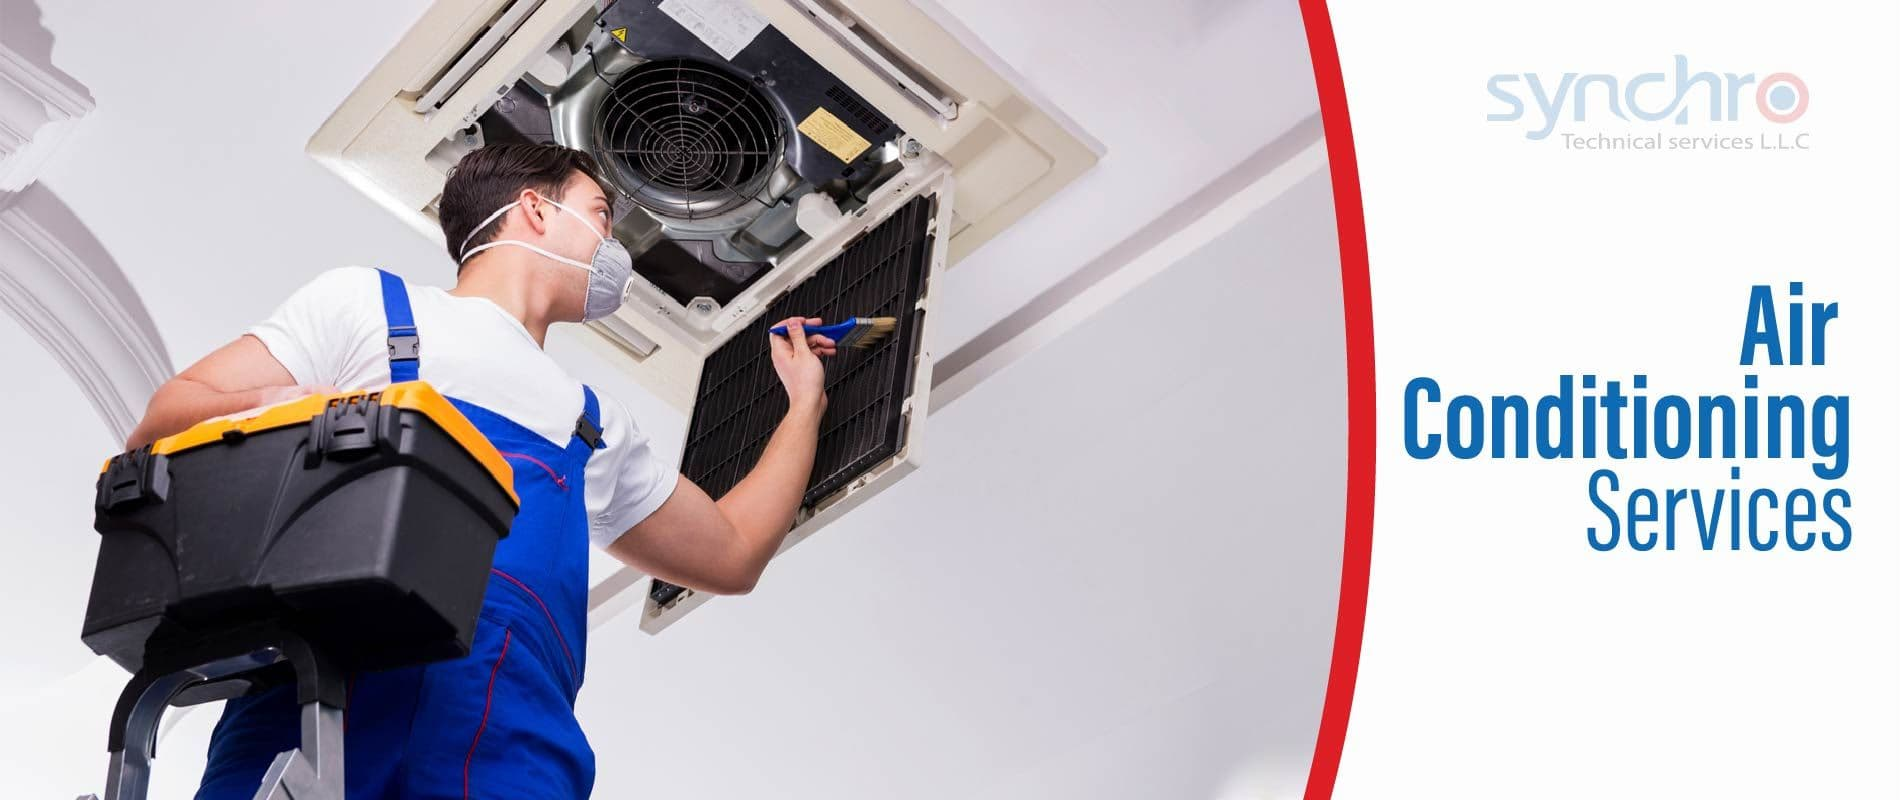 Air Conditioning Services Dubai HVAC Maintenance Service